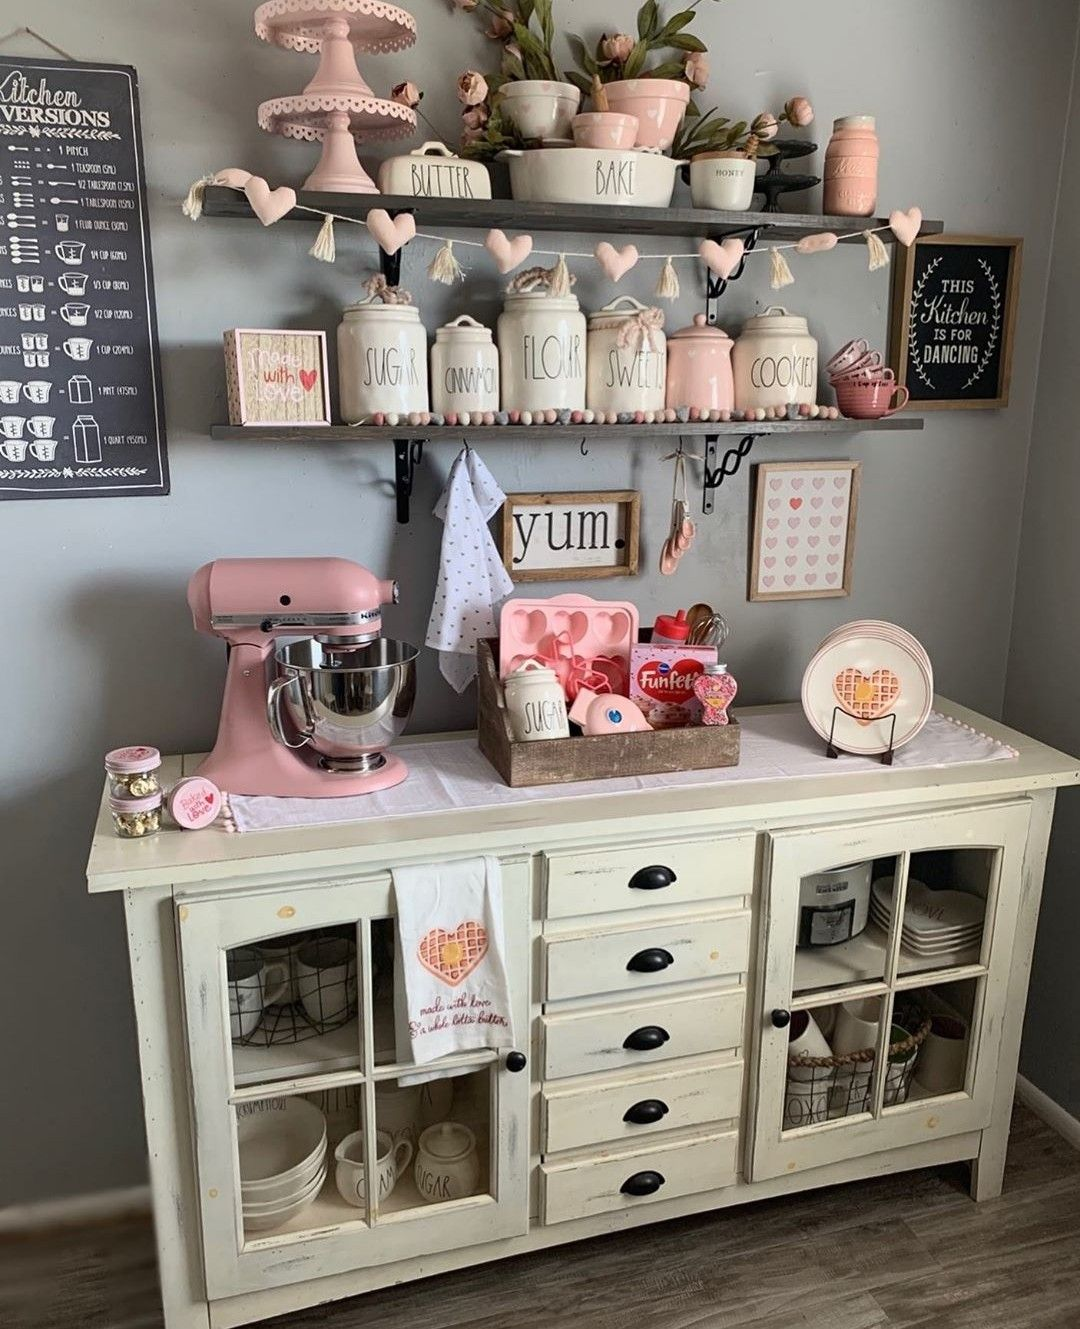 Pin By Laura Watts On Rae Dunn Inspo In 2020 Baking Station Home Decor Store Dining Decor